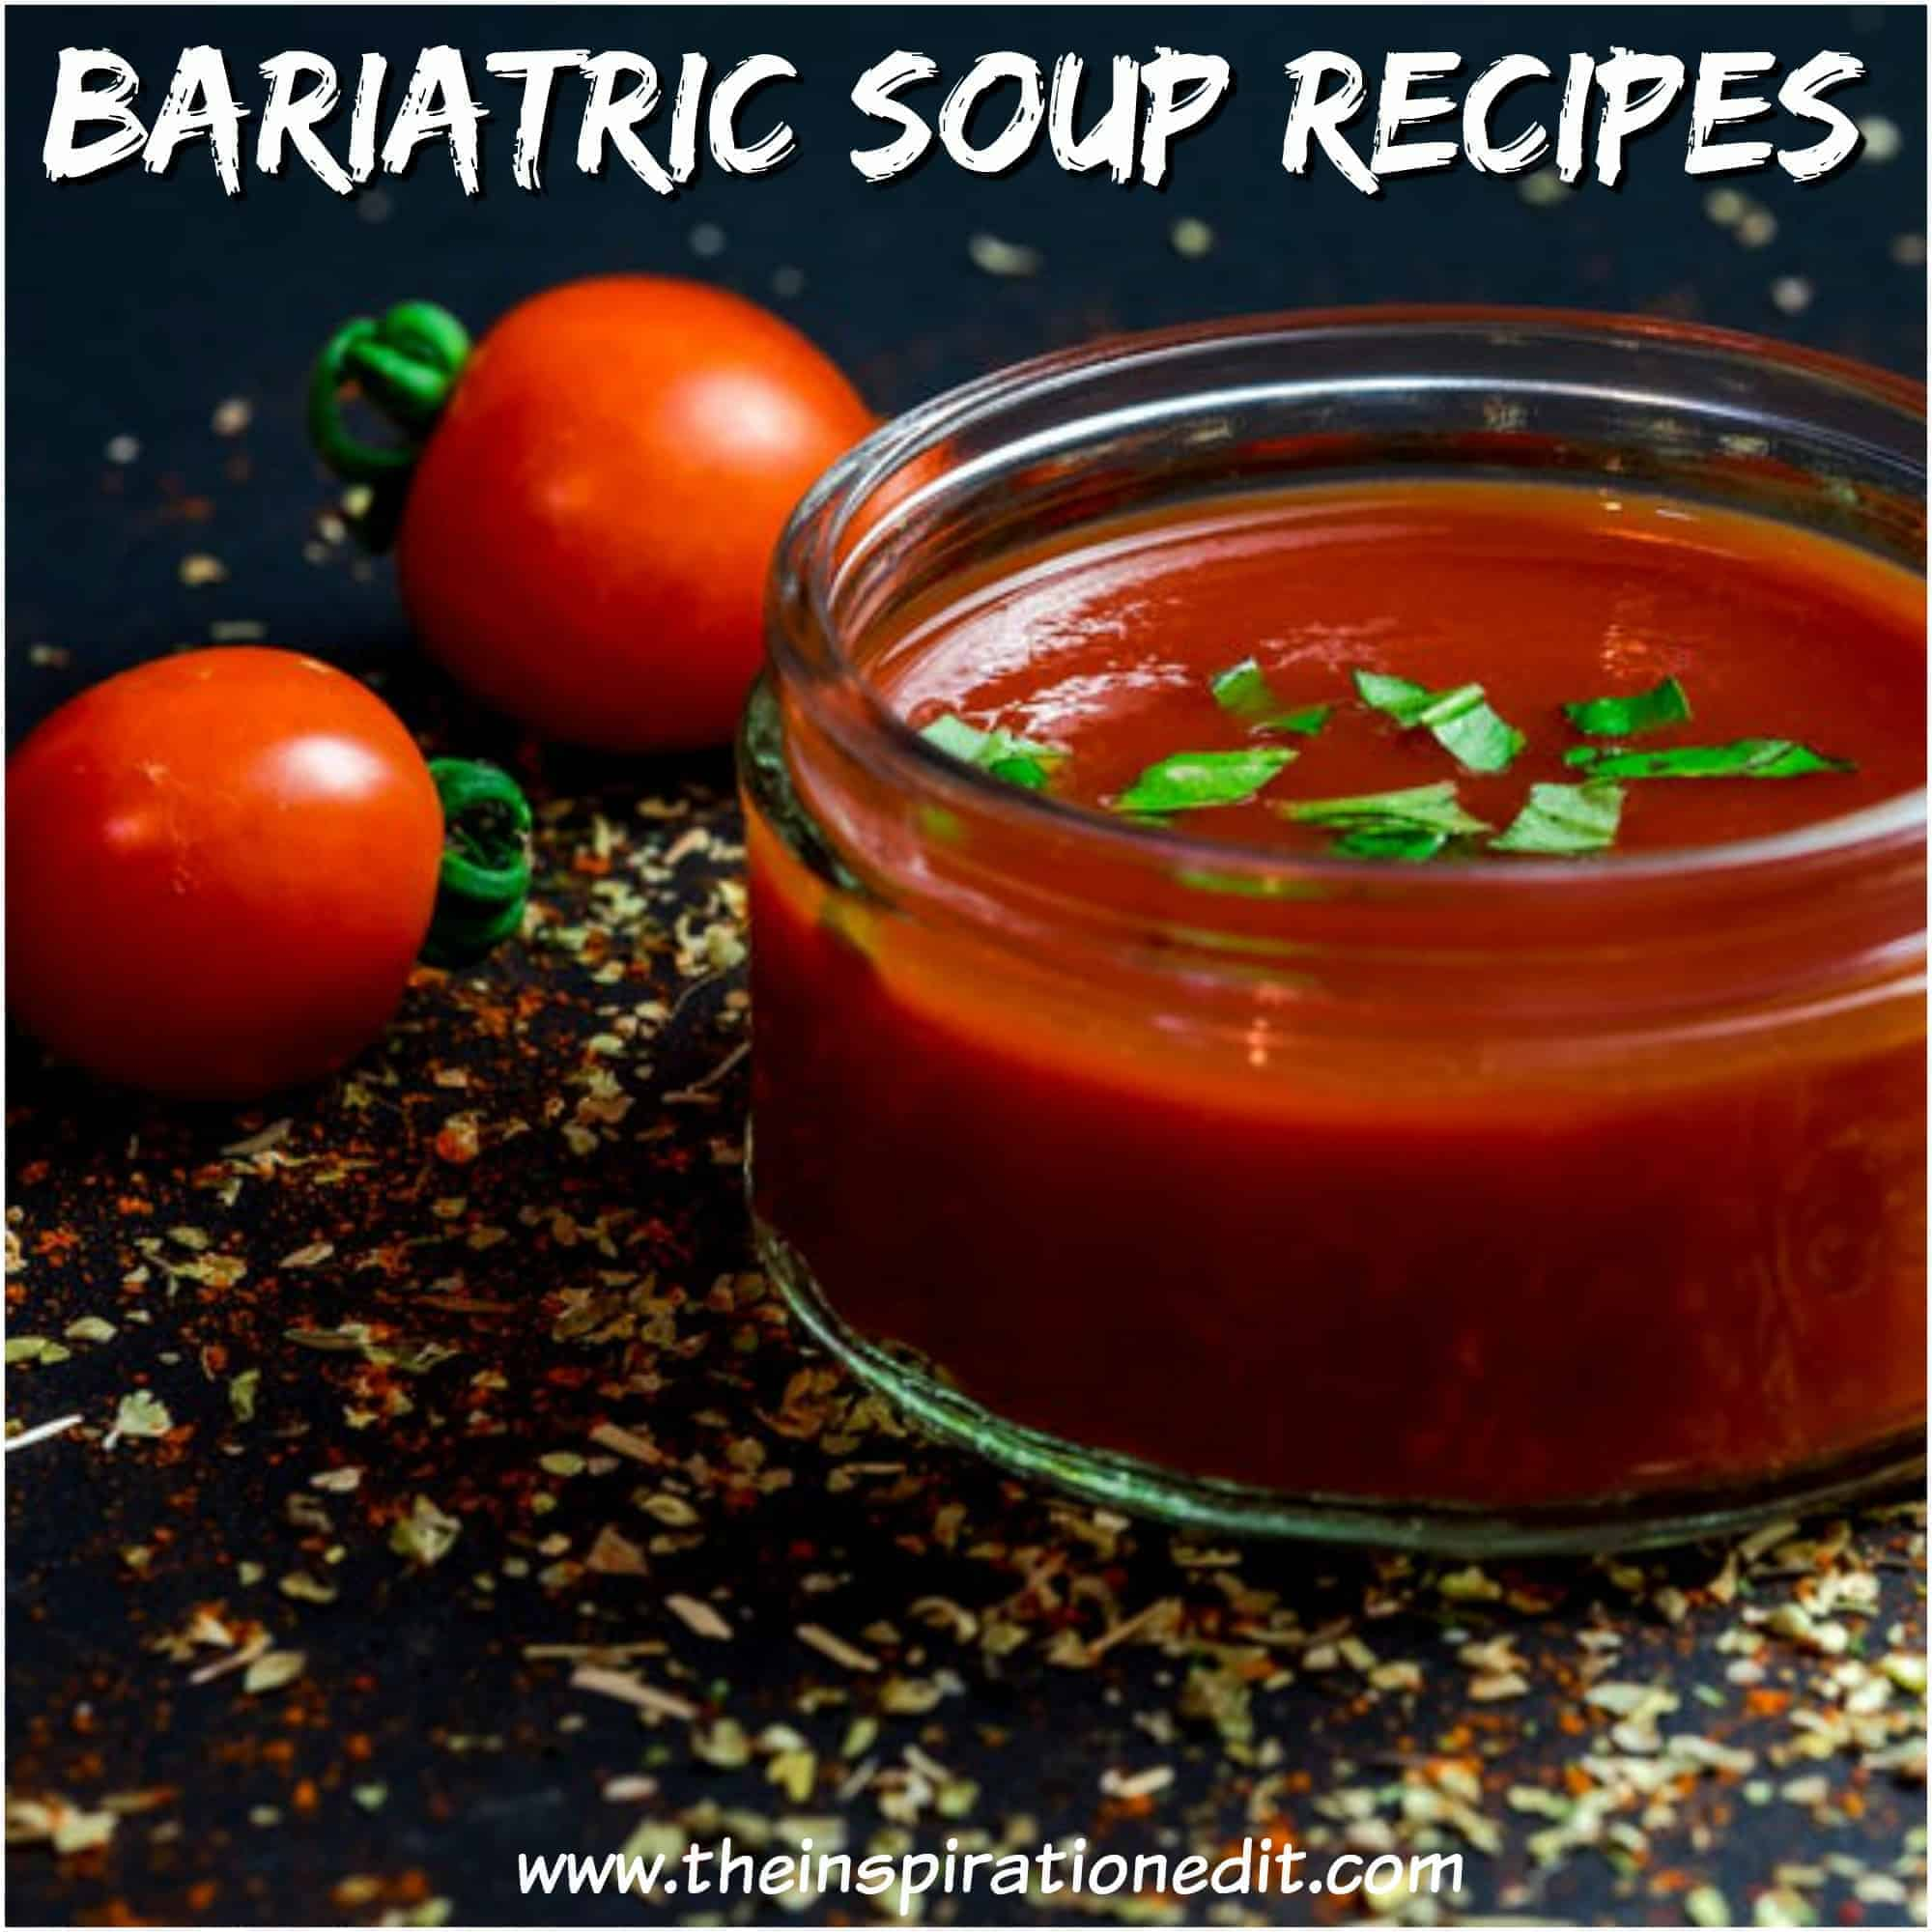 Bariatric soup recipes for gastric bypass patients and gastric sleeve patients